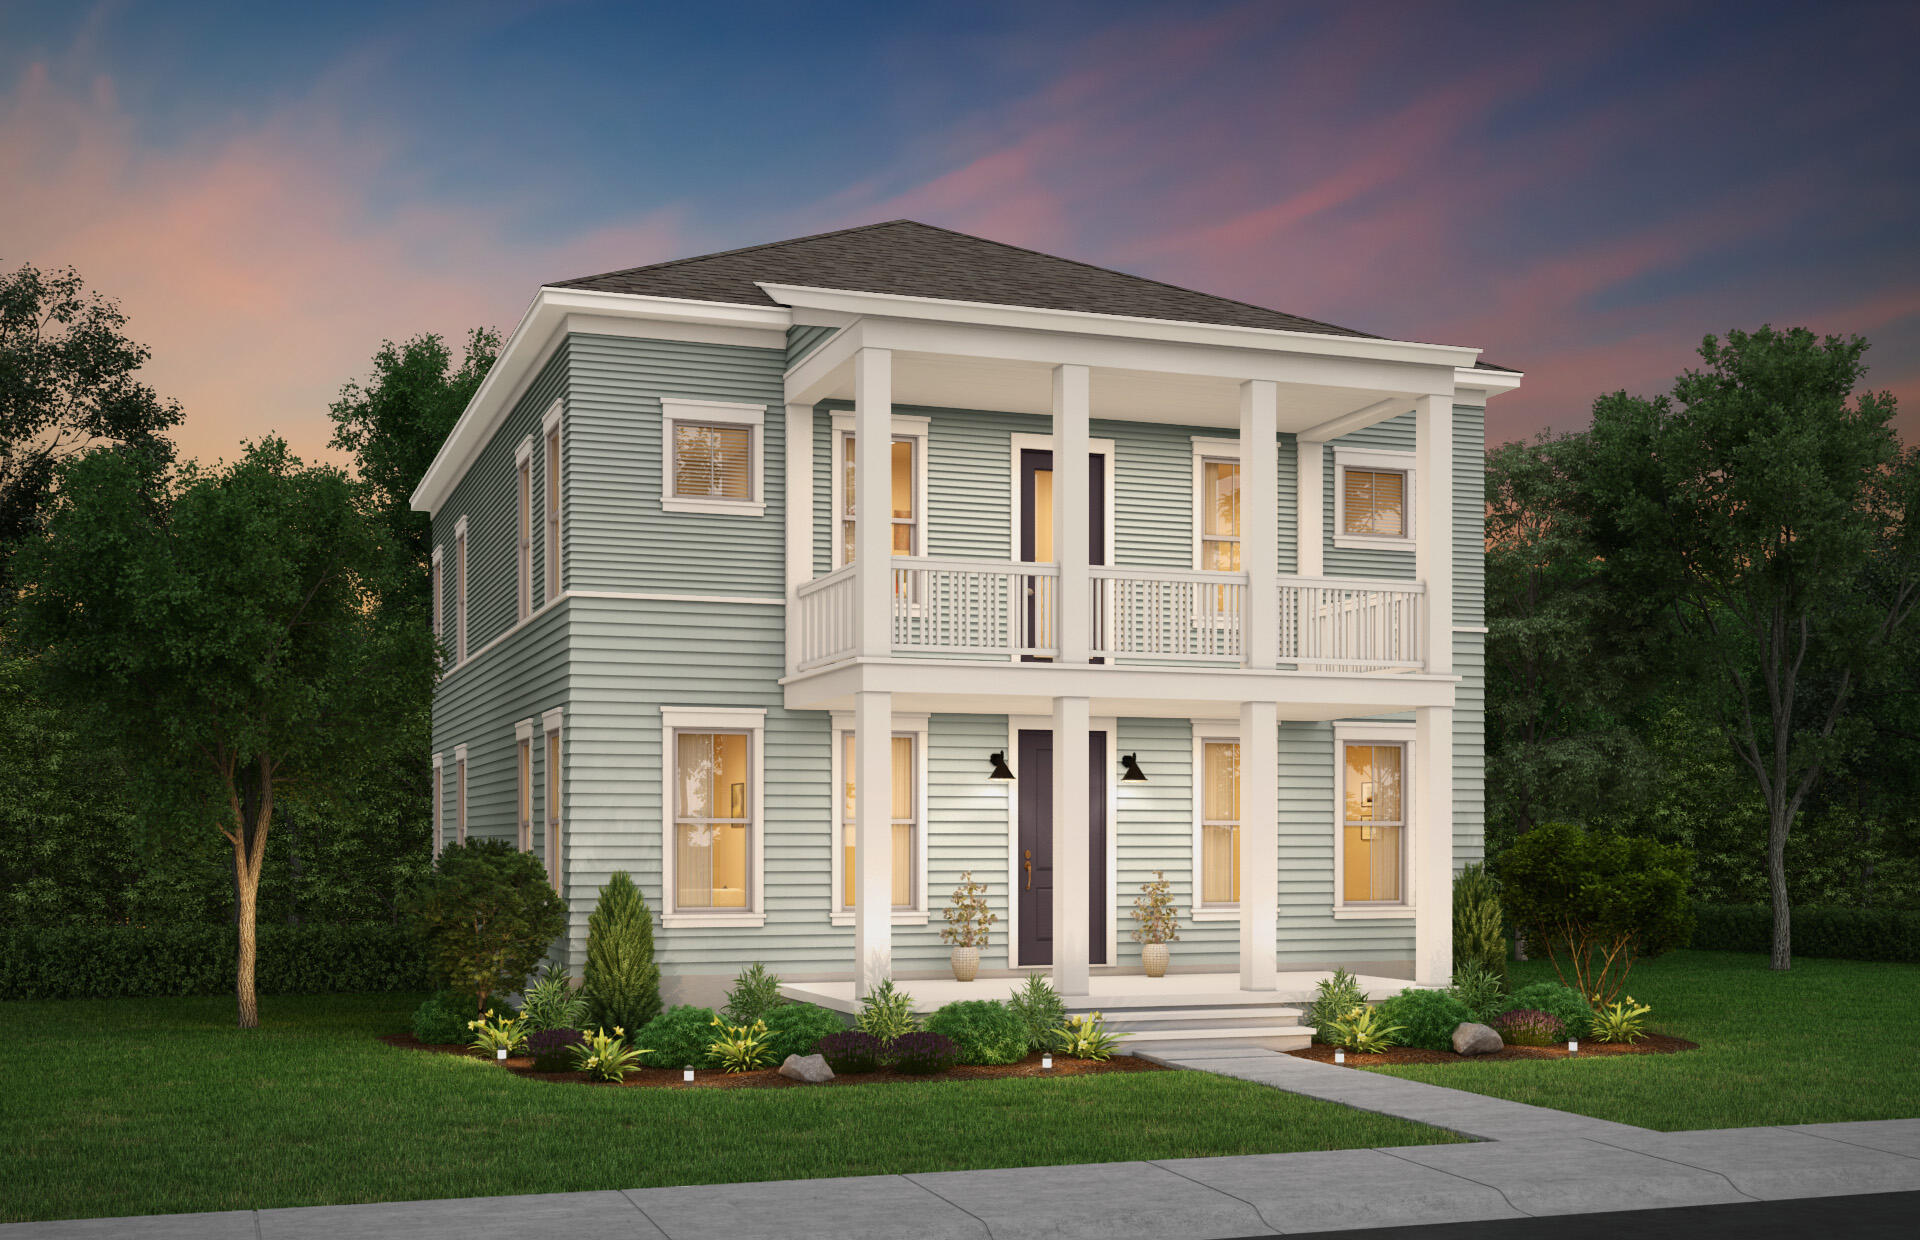 116 Falaise Street, Charleston, 29492, 4 Bedrooms Bedrooms, ,3 BathroomsBathrooms,For Sale,Falaise,21011634